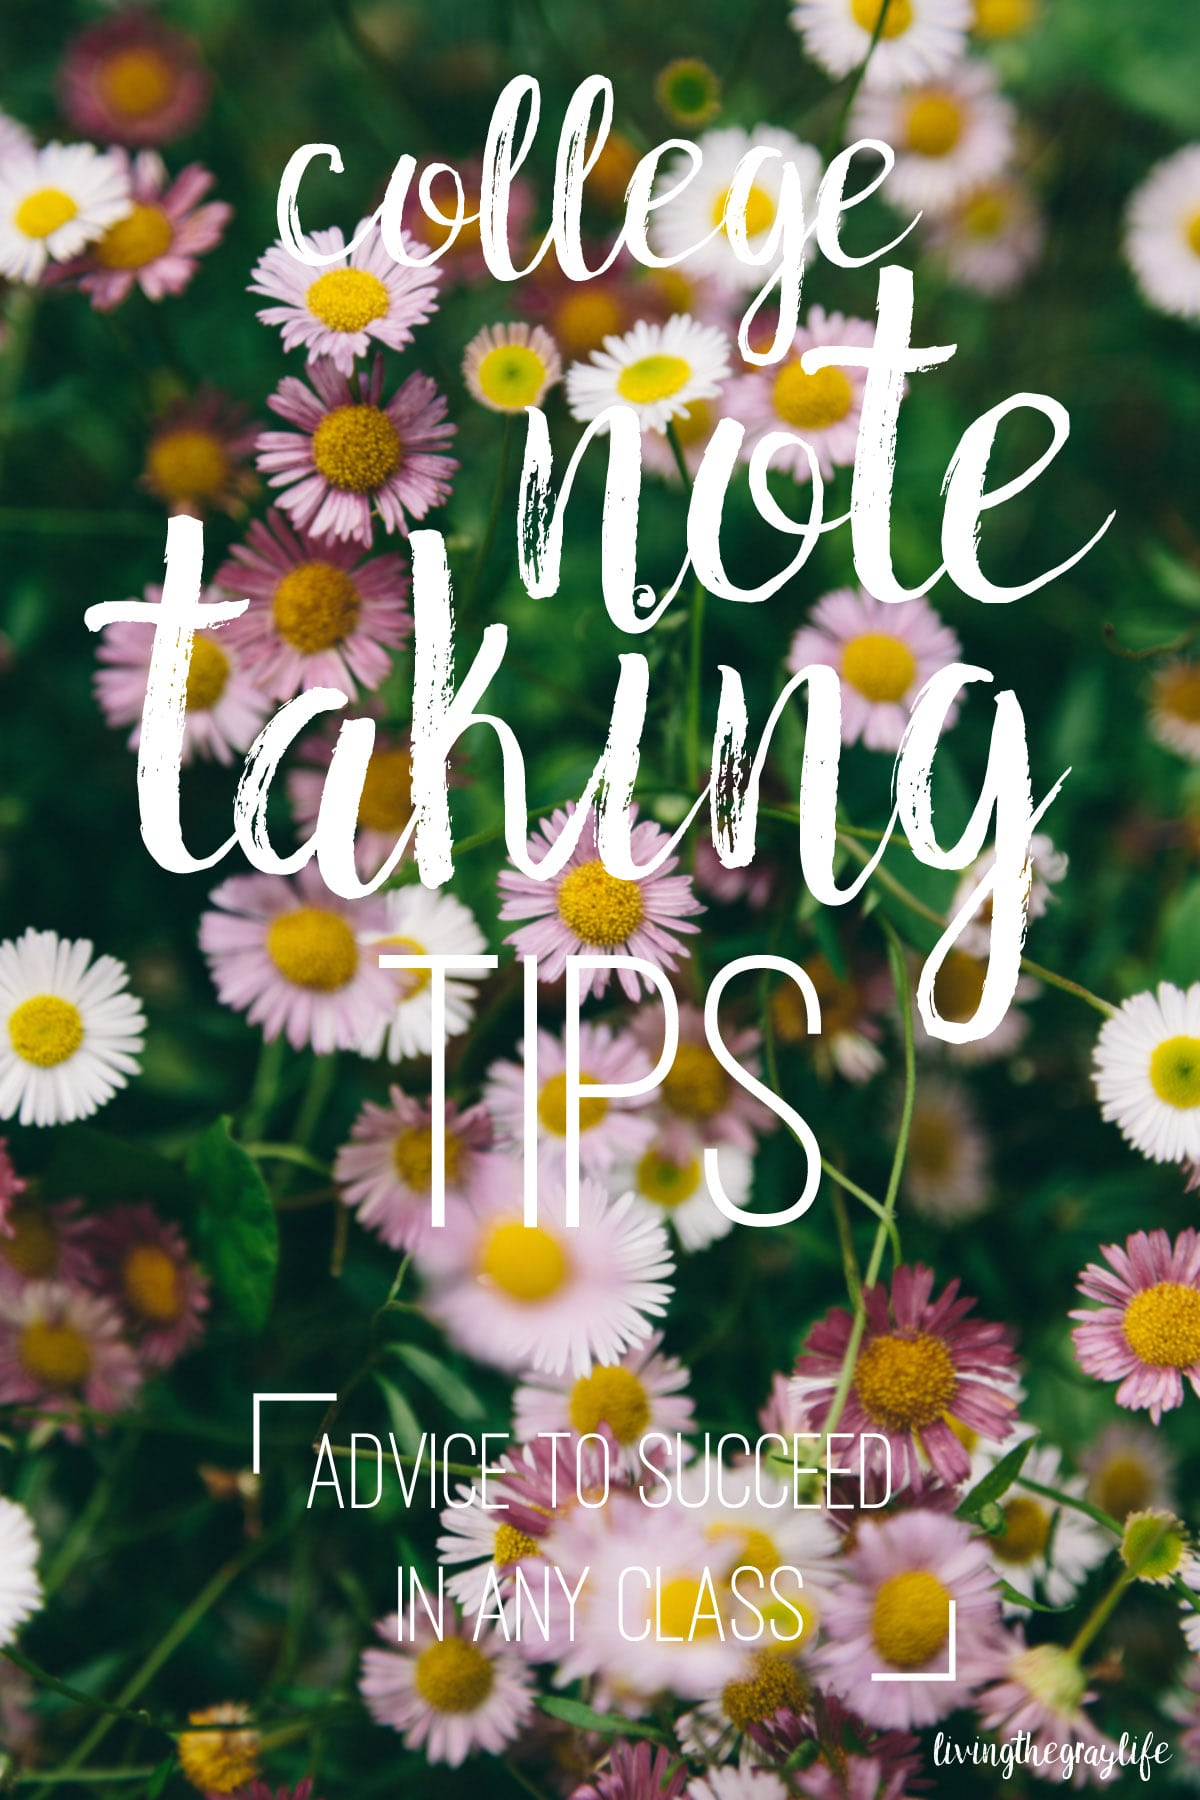 Struggling in a college class or just looking to improve your note taking? Check out this post for tips & tricks to keep those notes organized and resourceful!